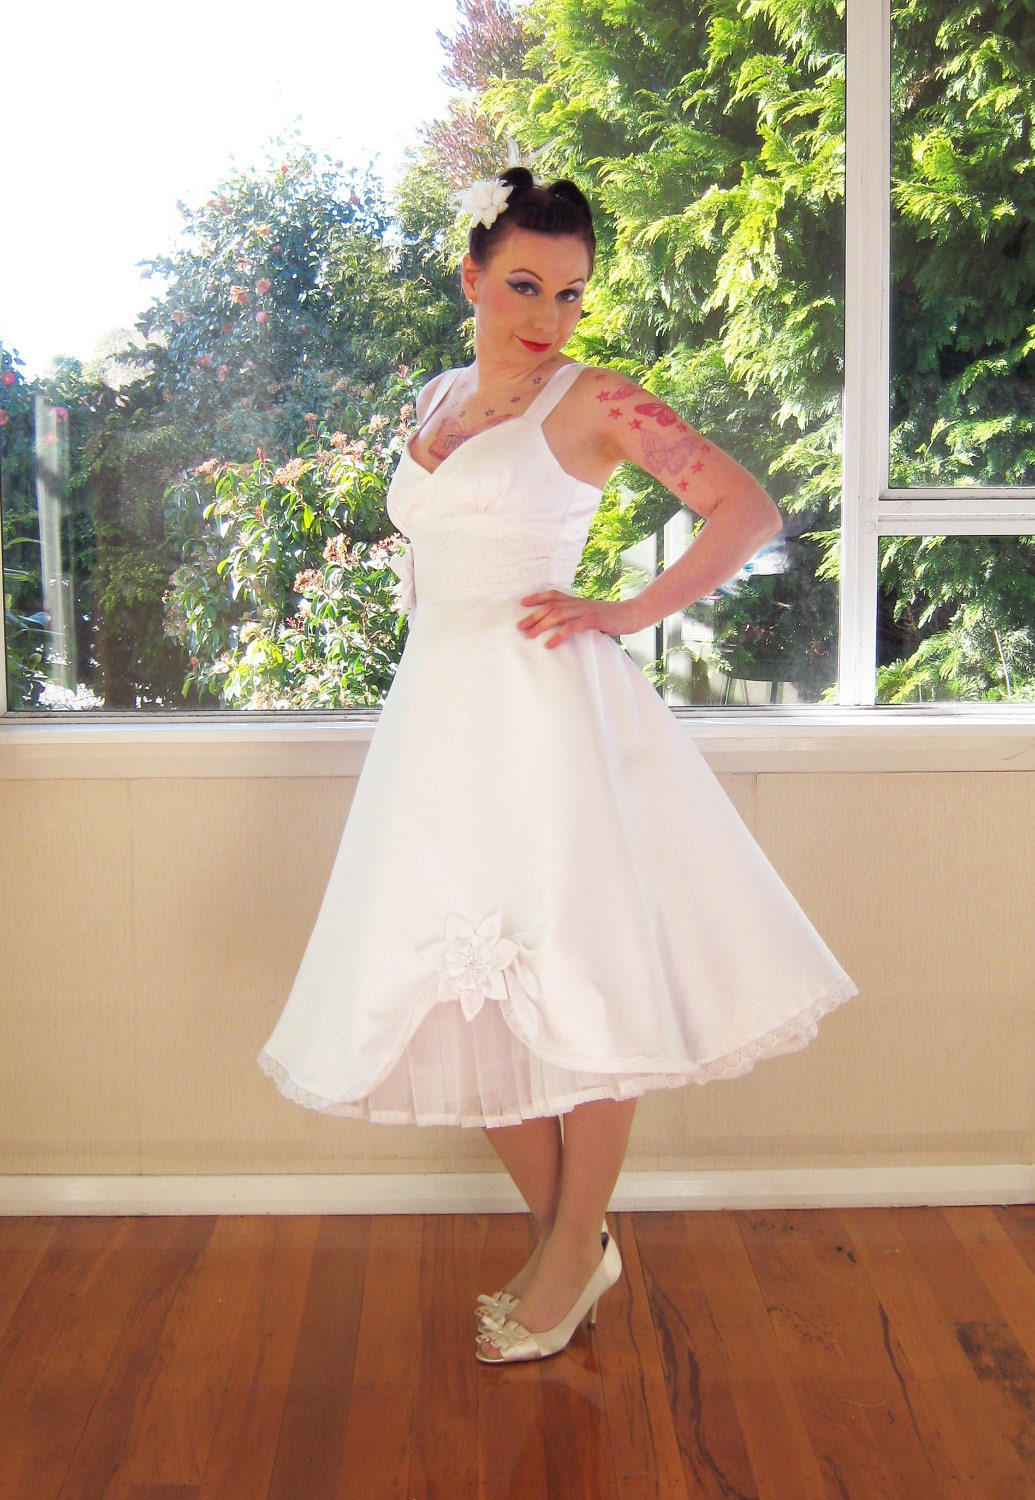 wedding dress 50s rockabilly pin up full skirt style ForWedding Dresses Pin Up Style